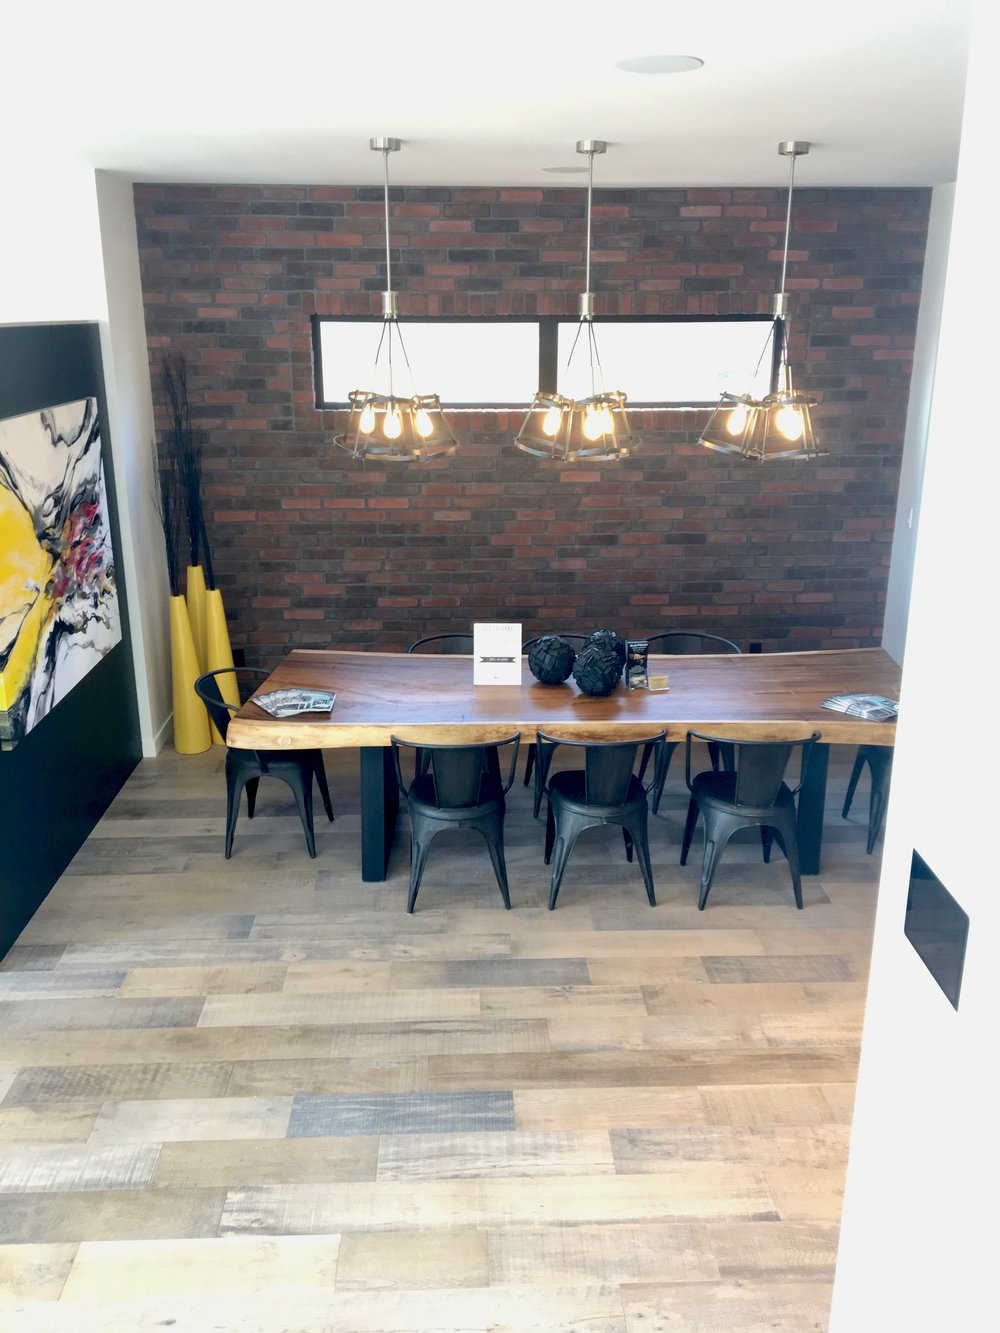 Artista show home furniture. blue moon furniture winnipeg. fall parade of homes 2017 show home furniture. dining table single slab live edge.jpg